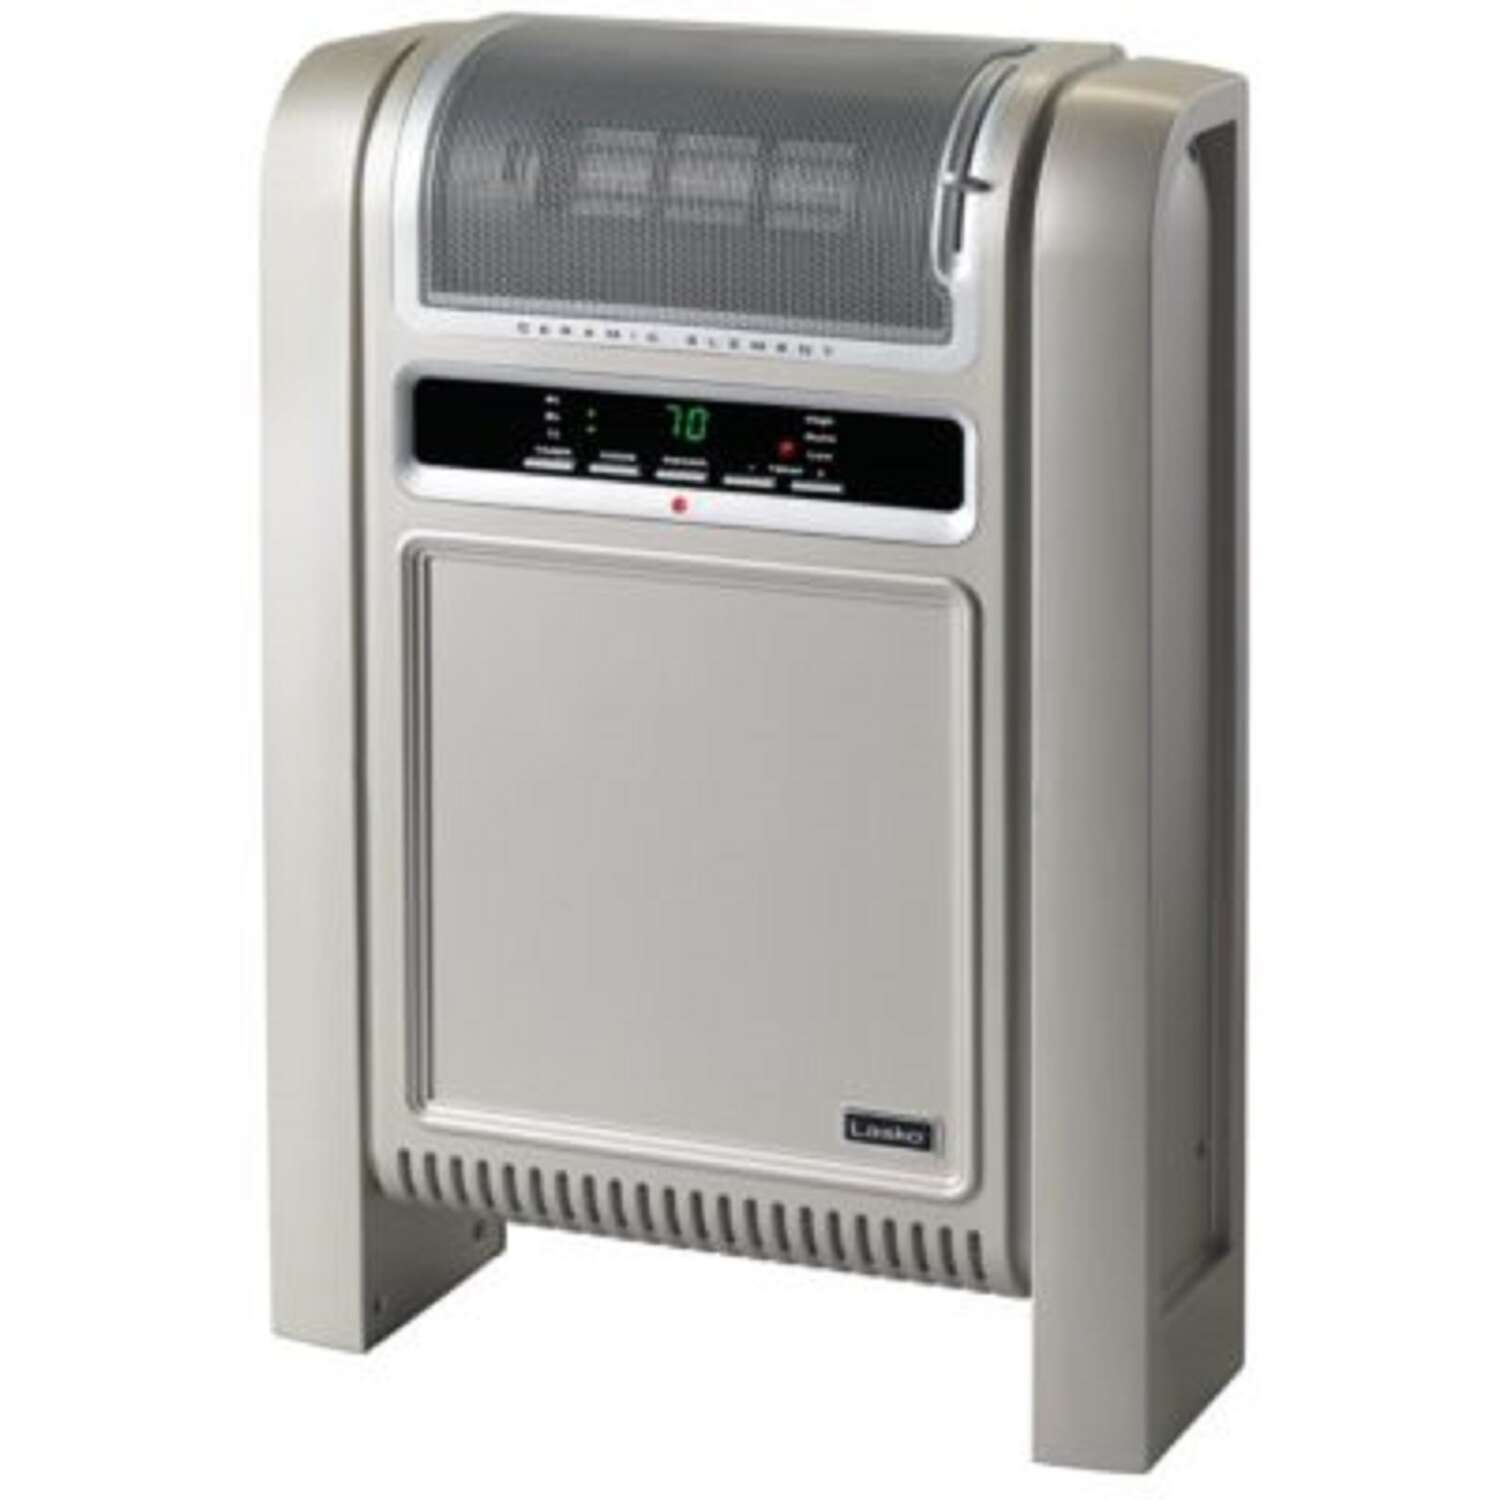 Lasko 300 sq. ft. Electric Cyclonic Ceramic Heater